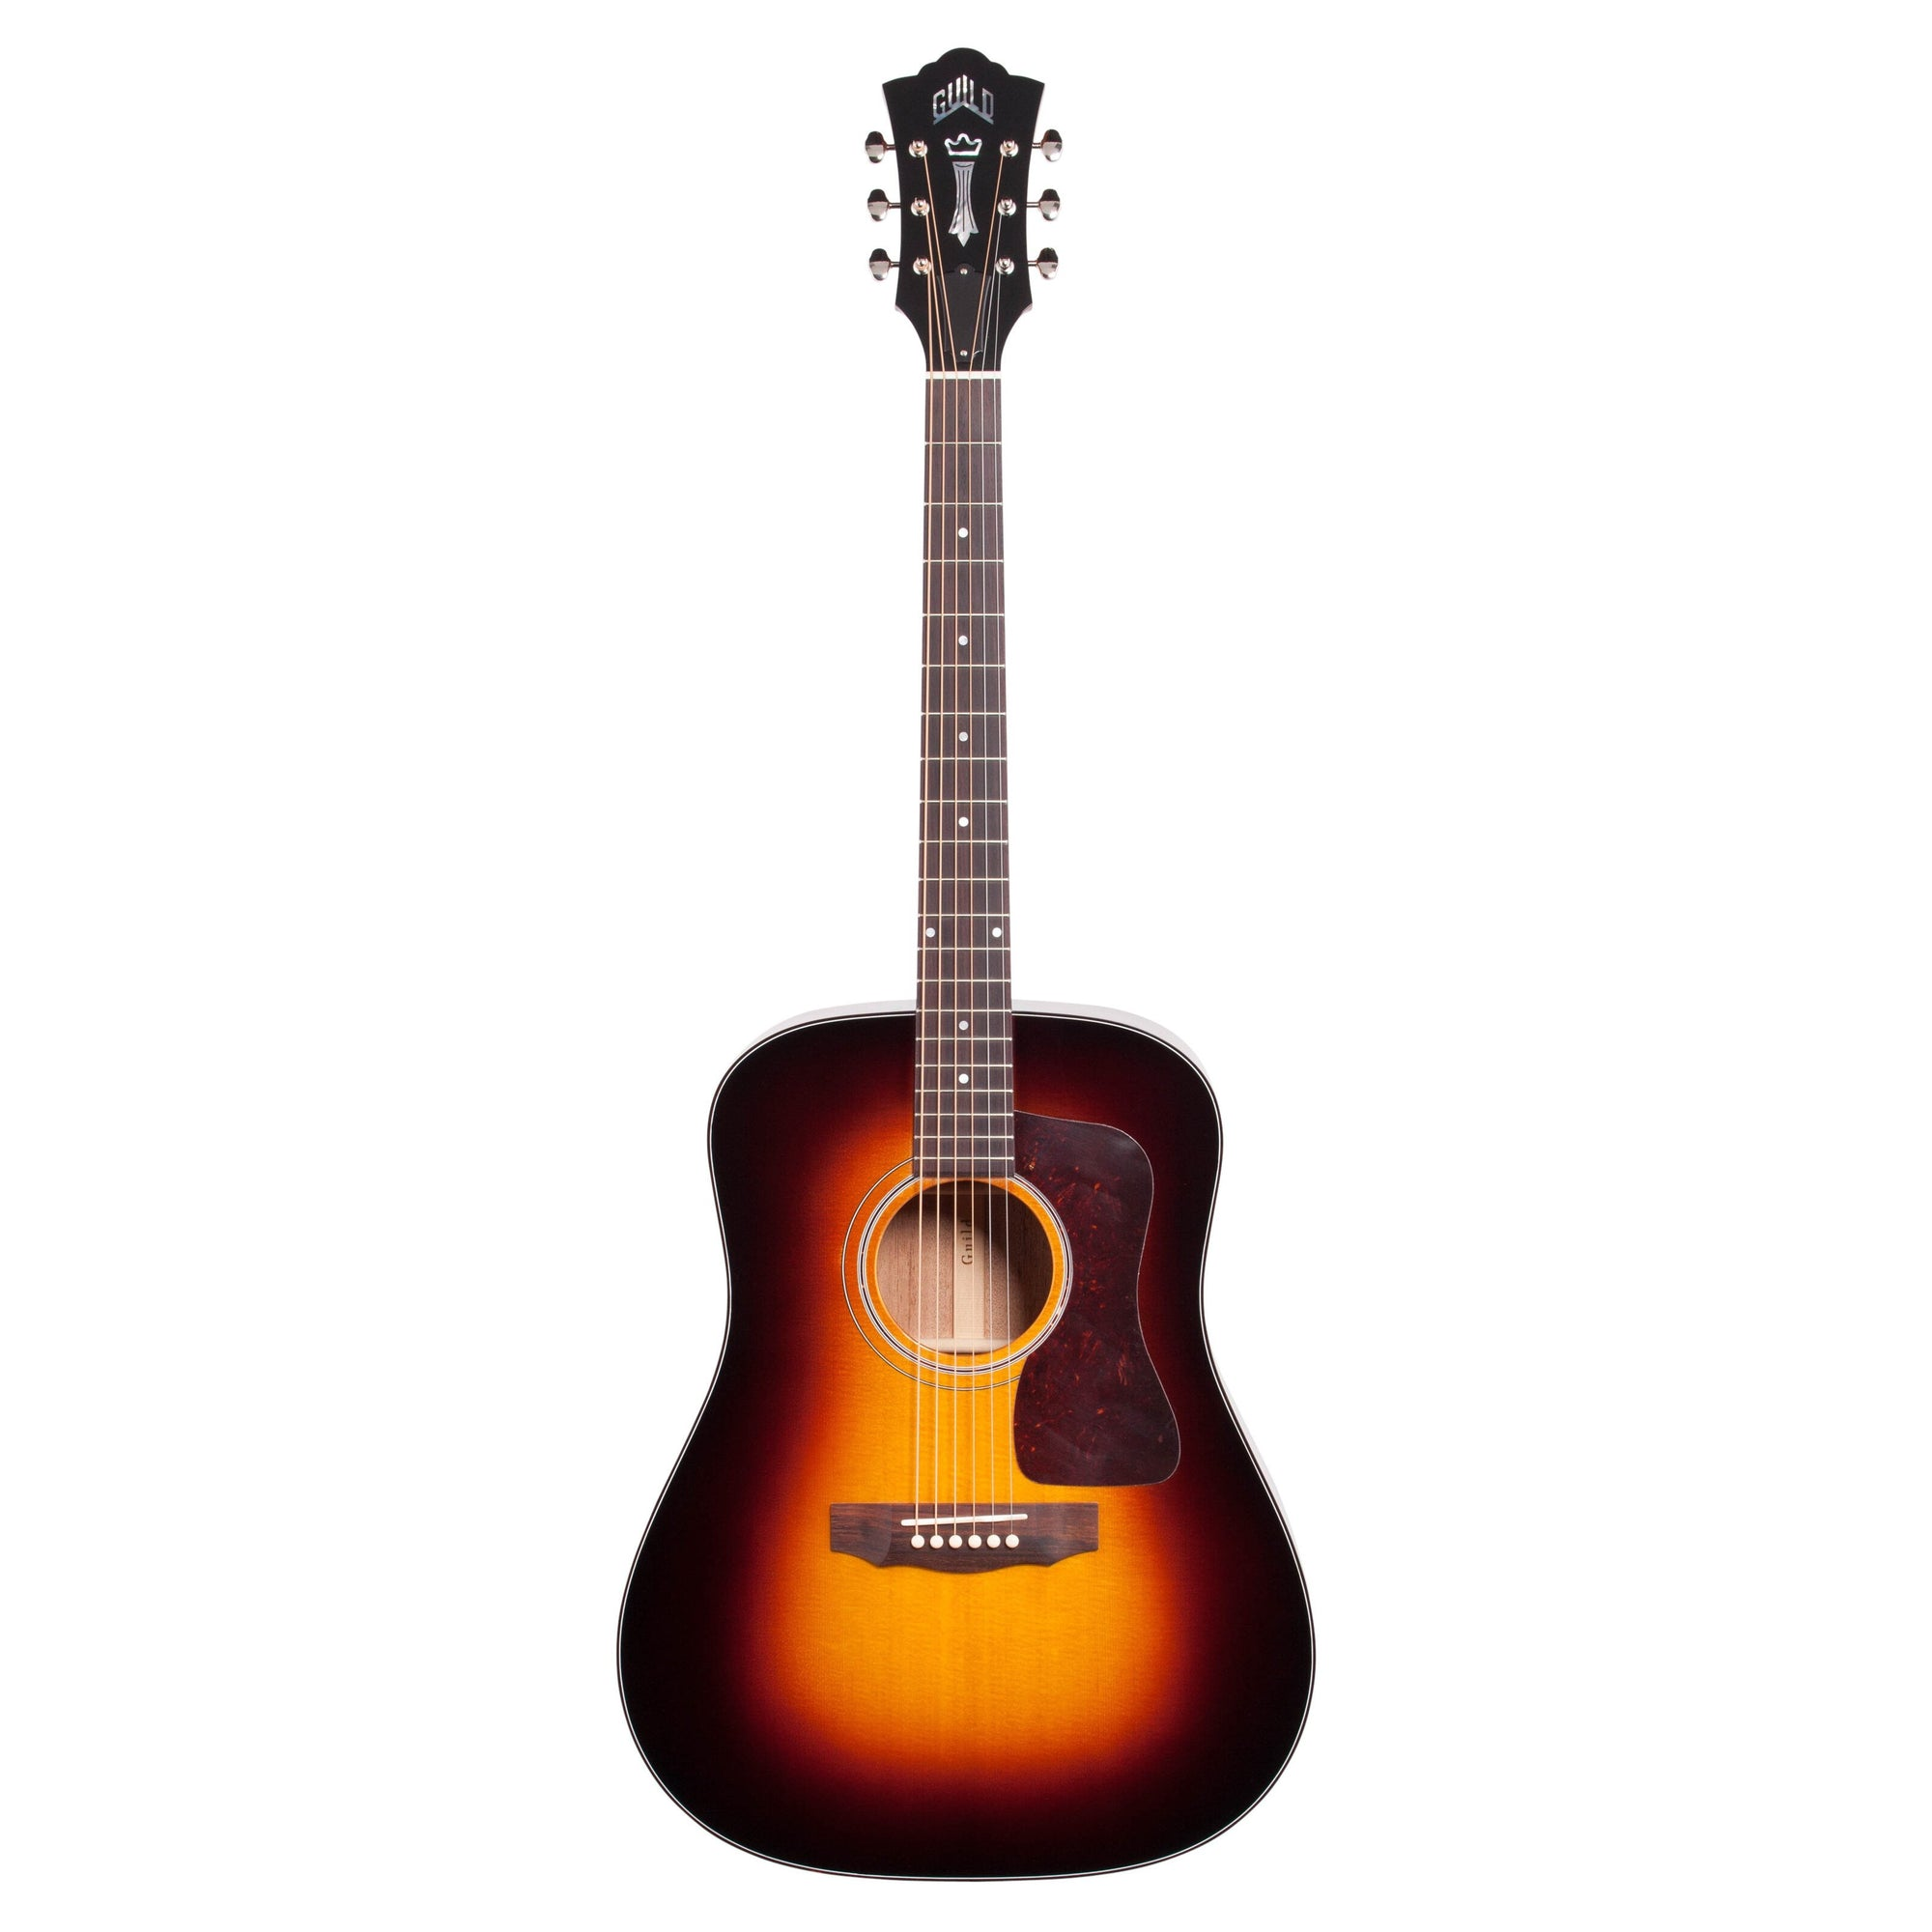 Guild D-40 Traditional Acoustic Guitar (with Case), Antique Sunburst